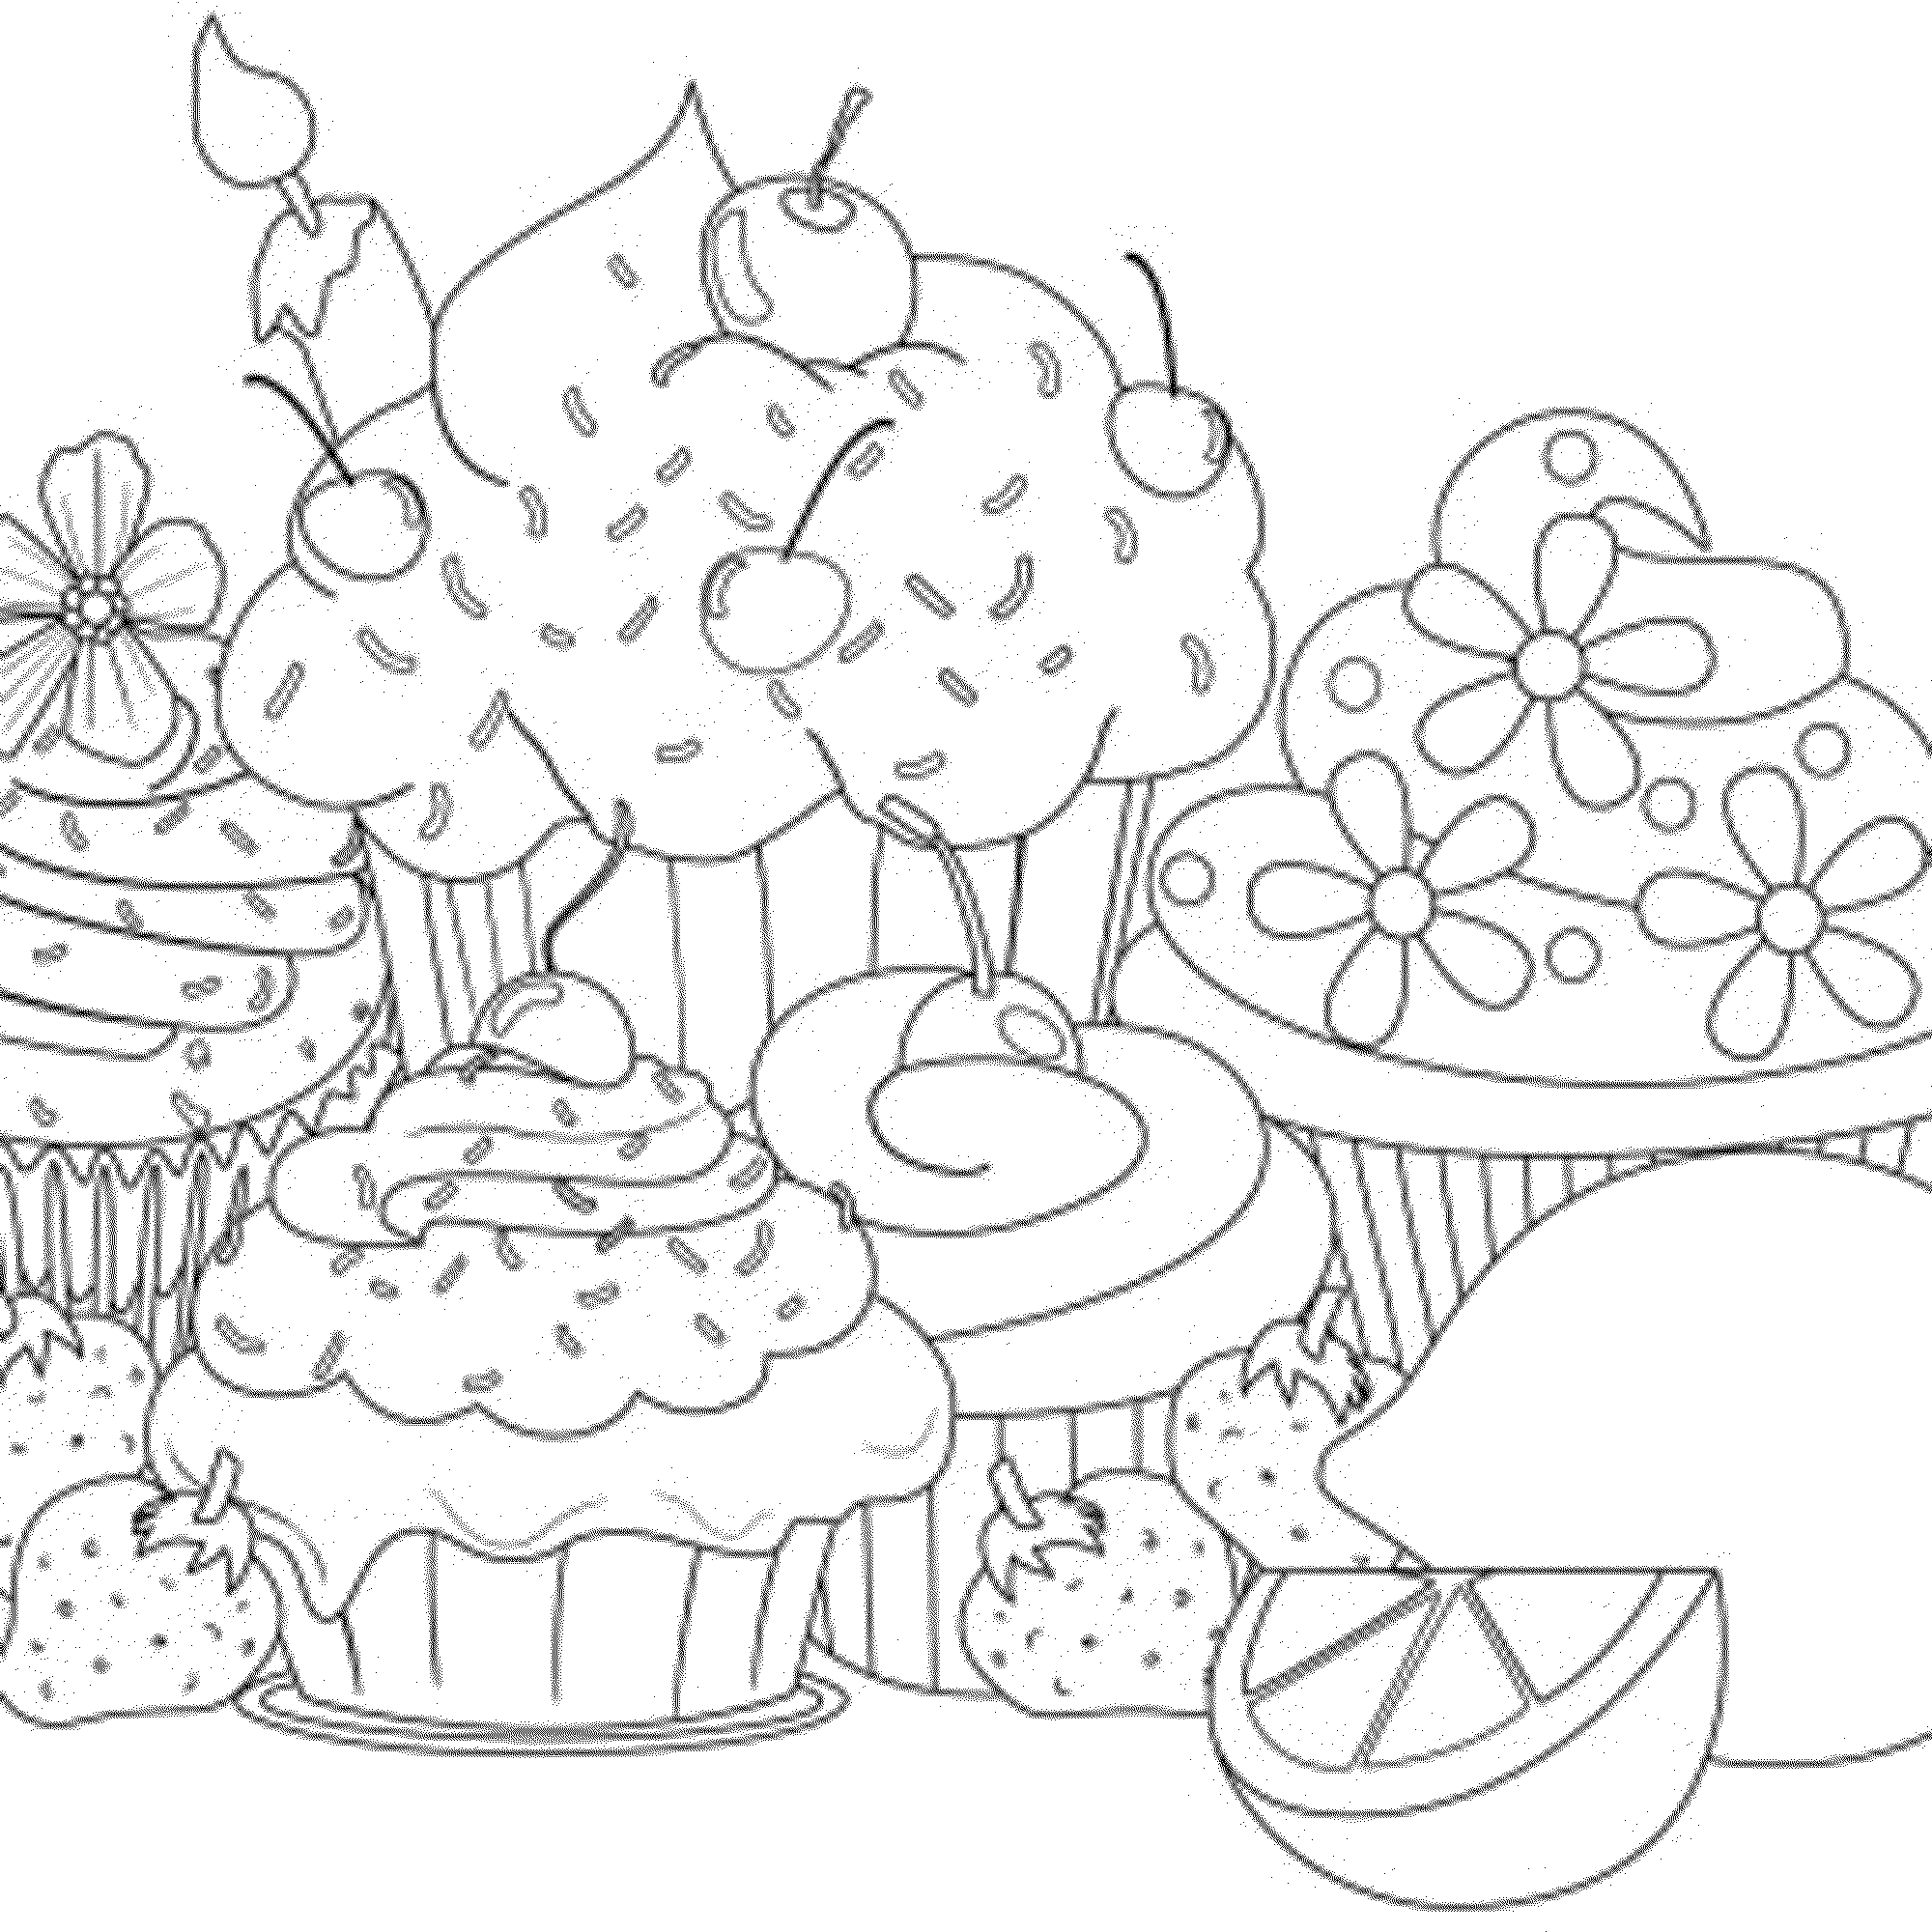 Coloring pages cupcakes